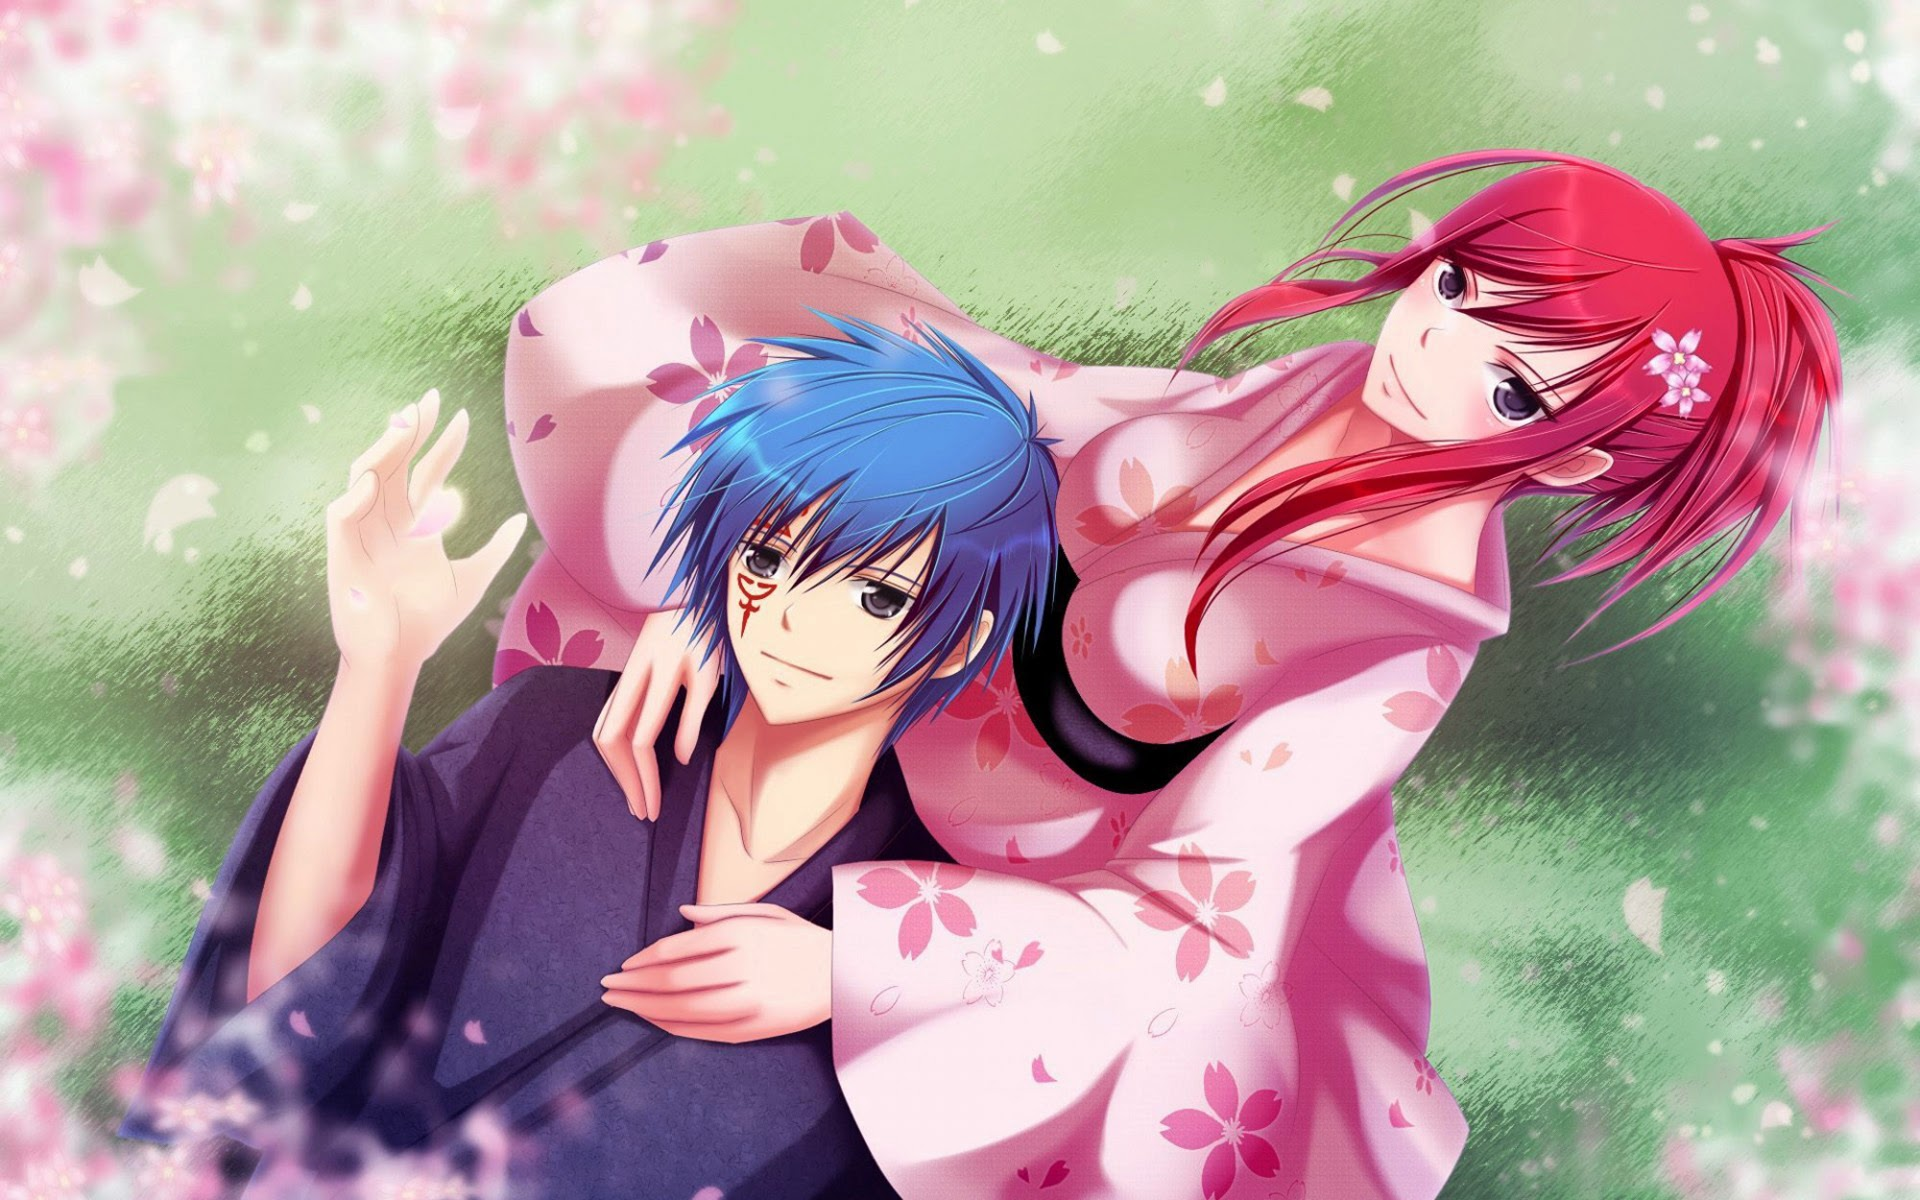 Erza Scarlet and Jellal Fernandes 7p Wallpaper HD